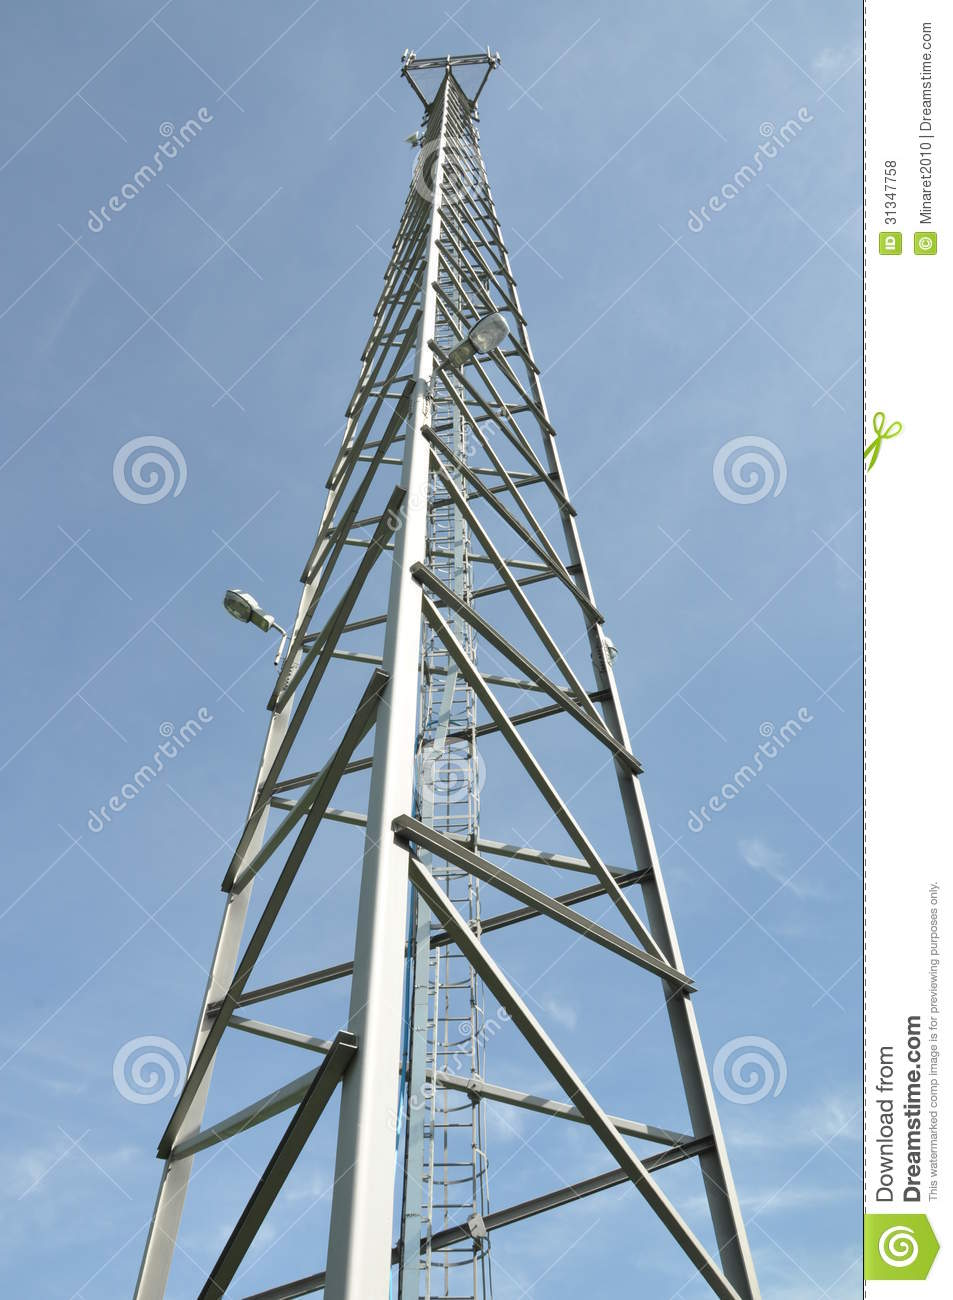 23978 G And Iot Dominate At Gsma Mobile World Congress 2015 as well Royalty Free Stock Photos Steel Cell Phone Tower Against Blue Sky Image31347758 in addition Ultrasonic Switch as well Product data sheet0900aecd804bbf6f besides Final Presentation 1469814. on microwave transceiver